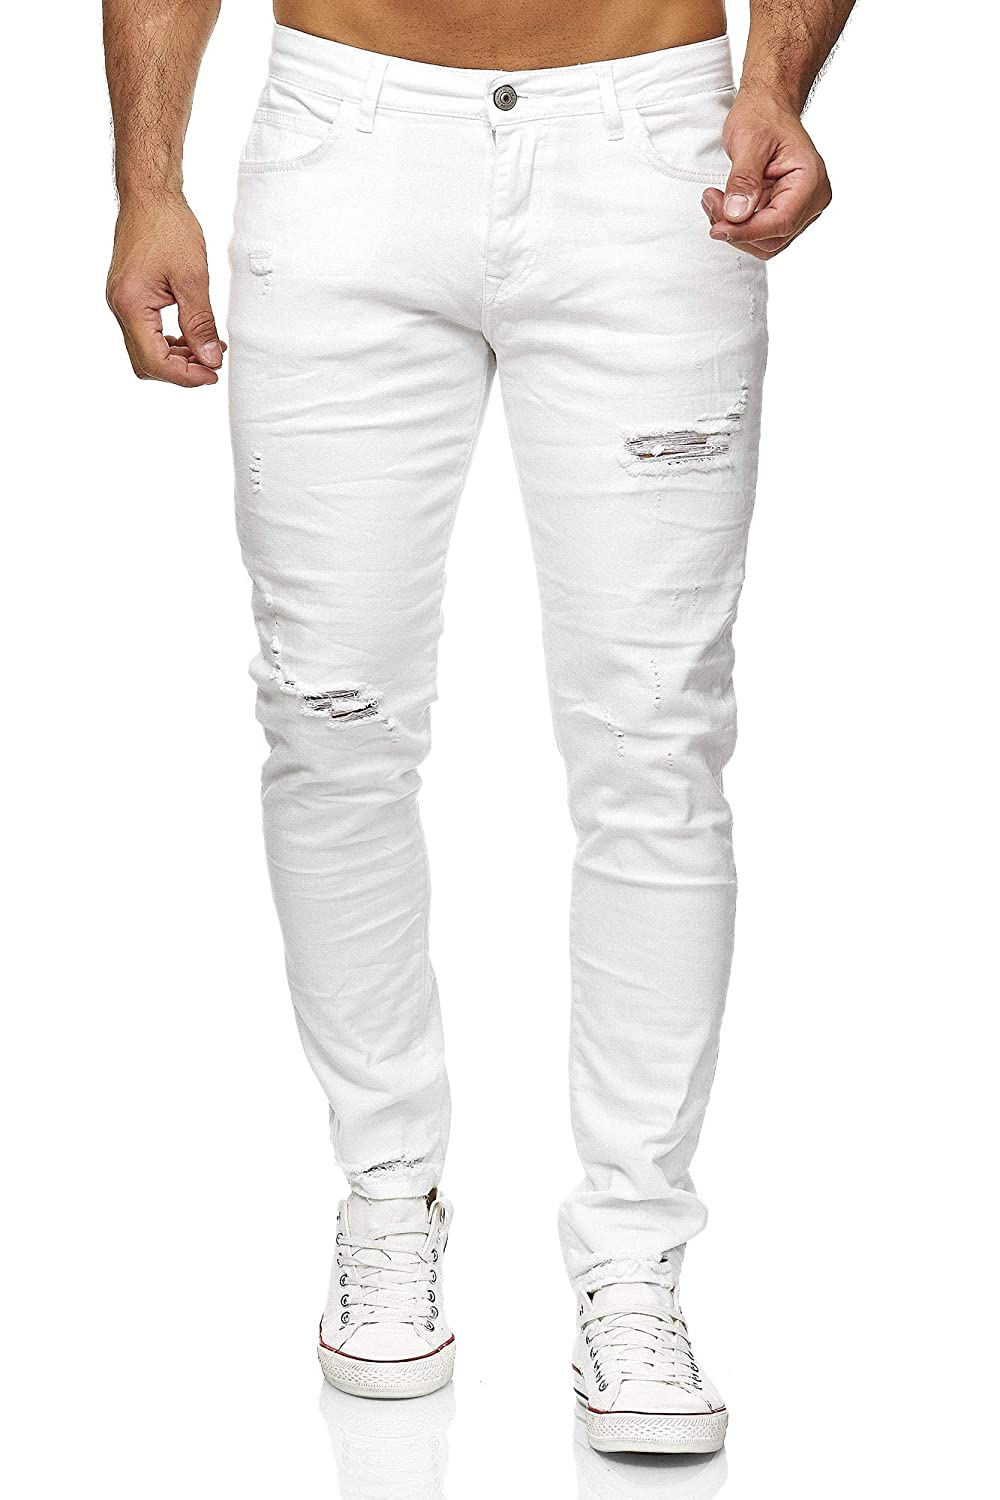 Red Bridge Herren Jeans Hose Slim Fit Röhrenjeans Denim Destroyed M4235